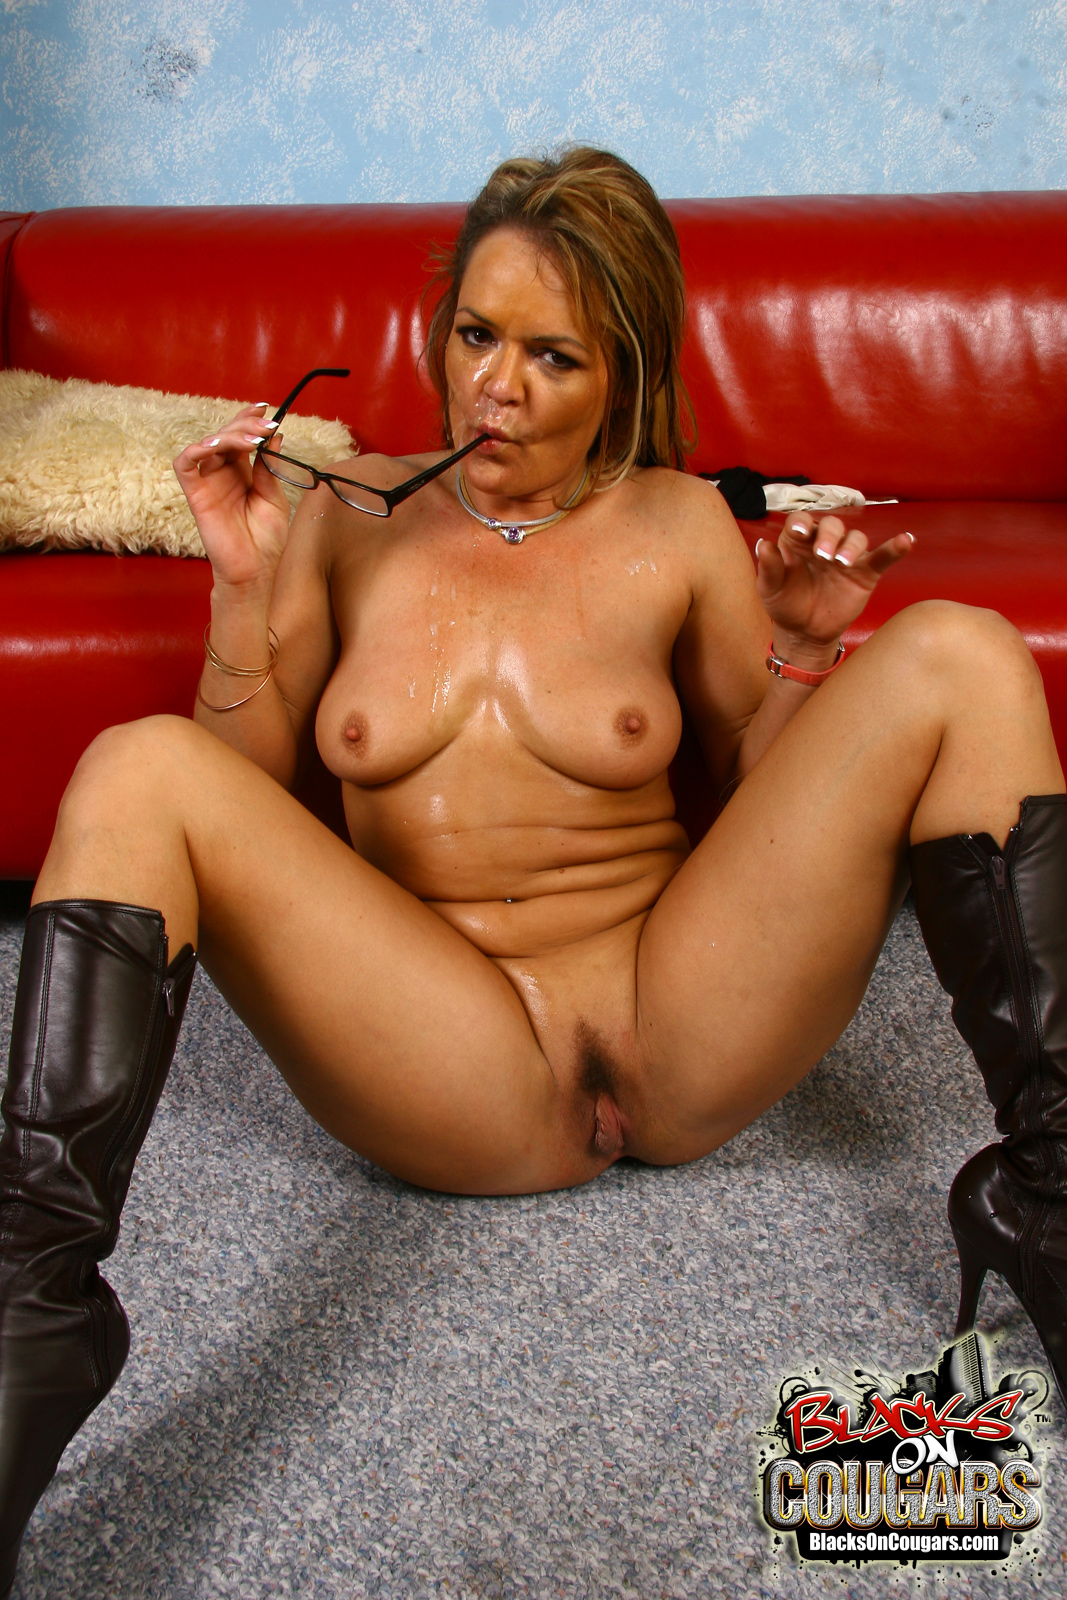 galleries blacksoncougars content kelly leigh pic 30